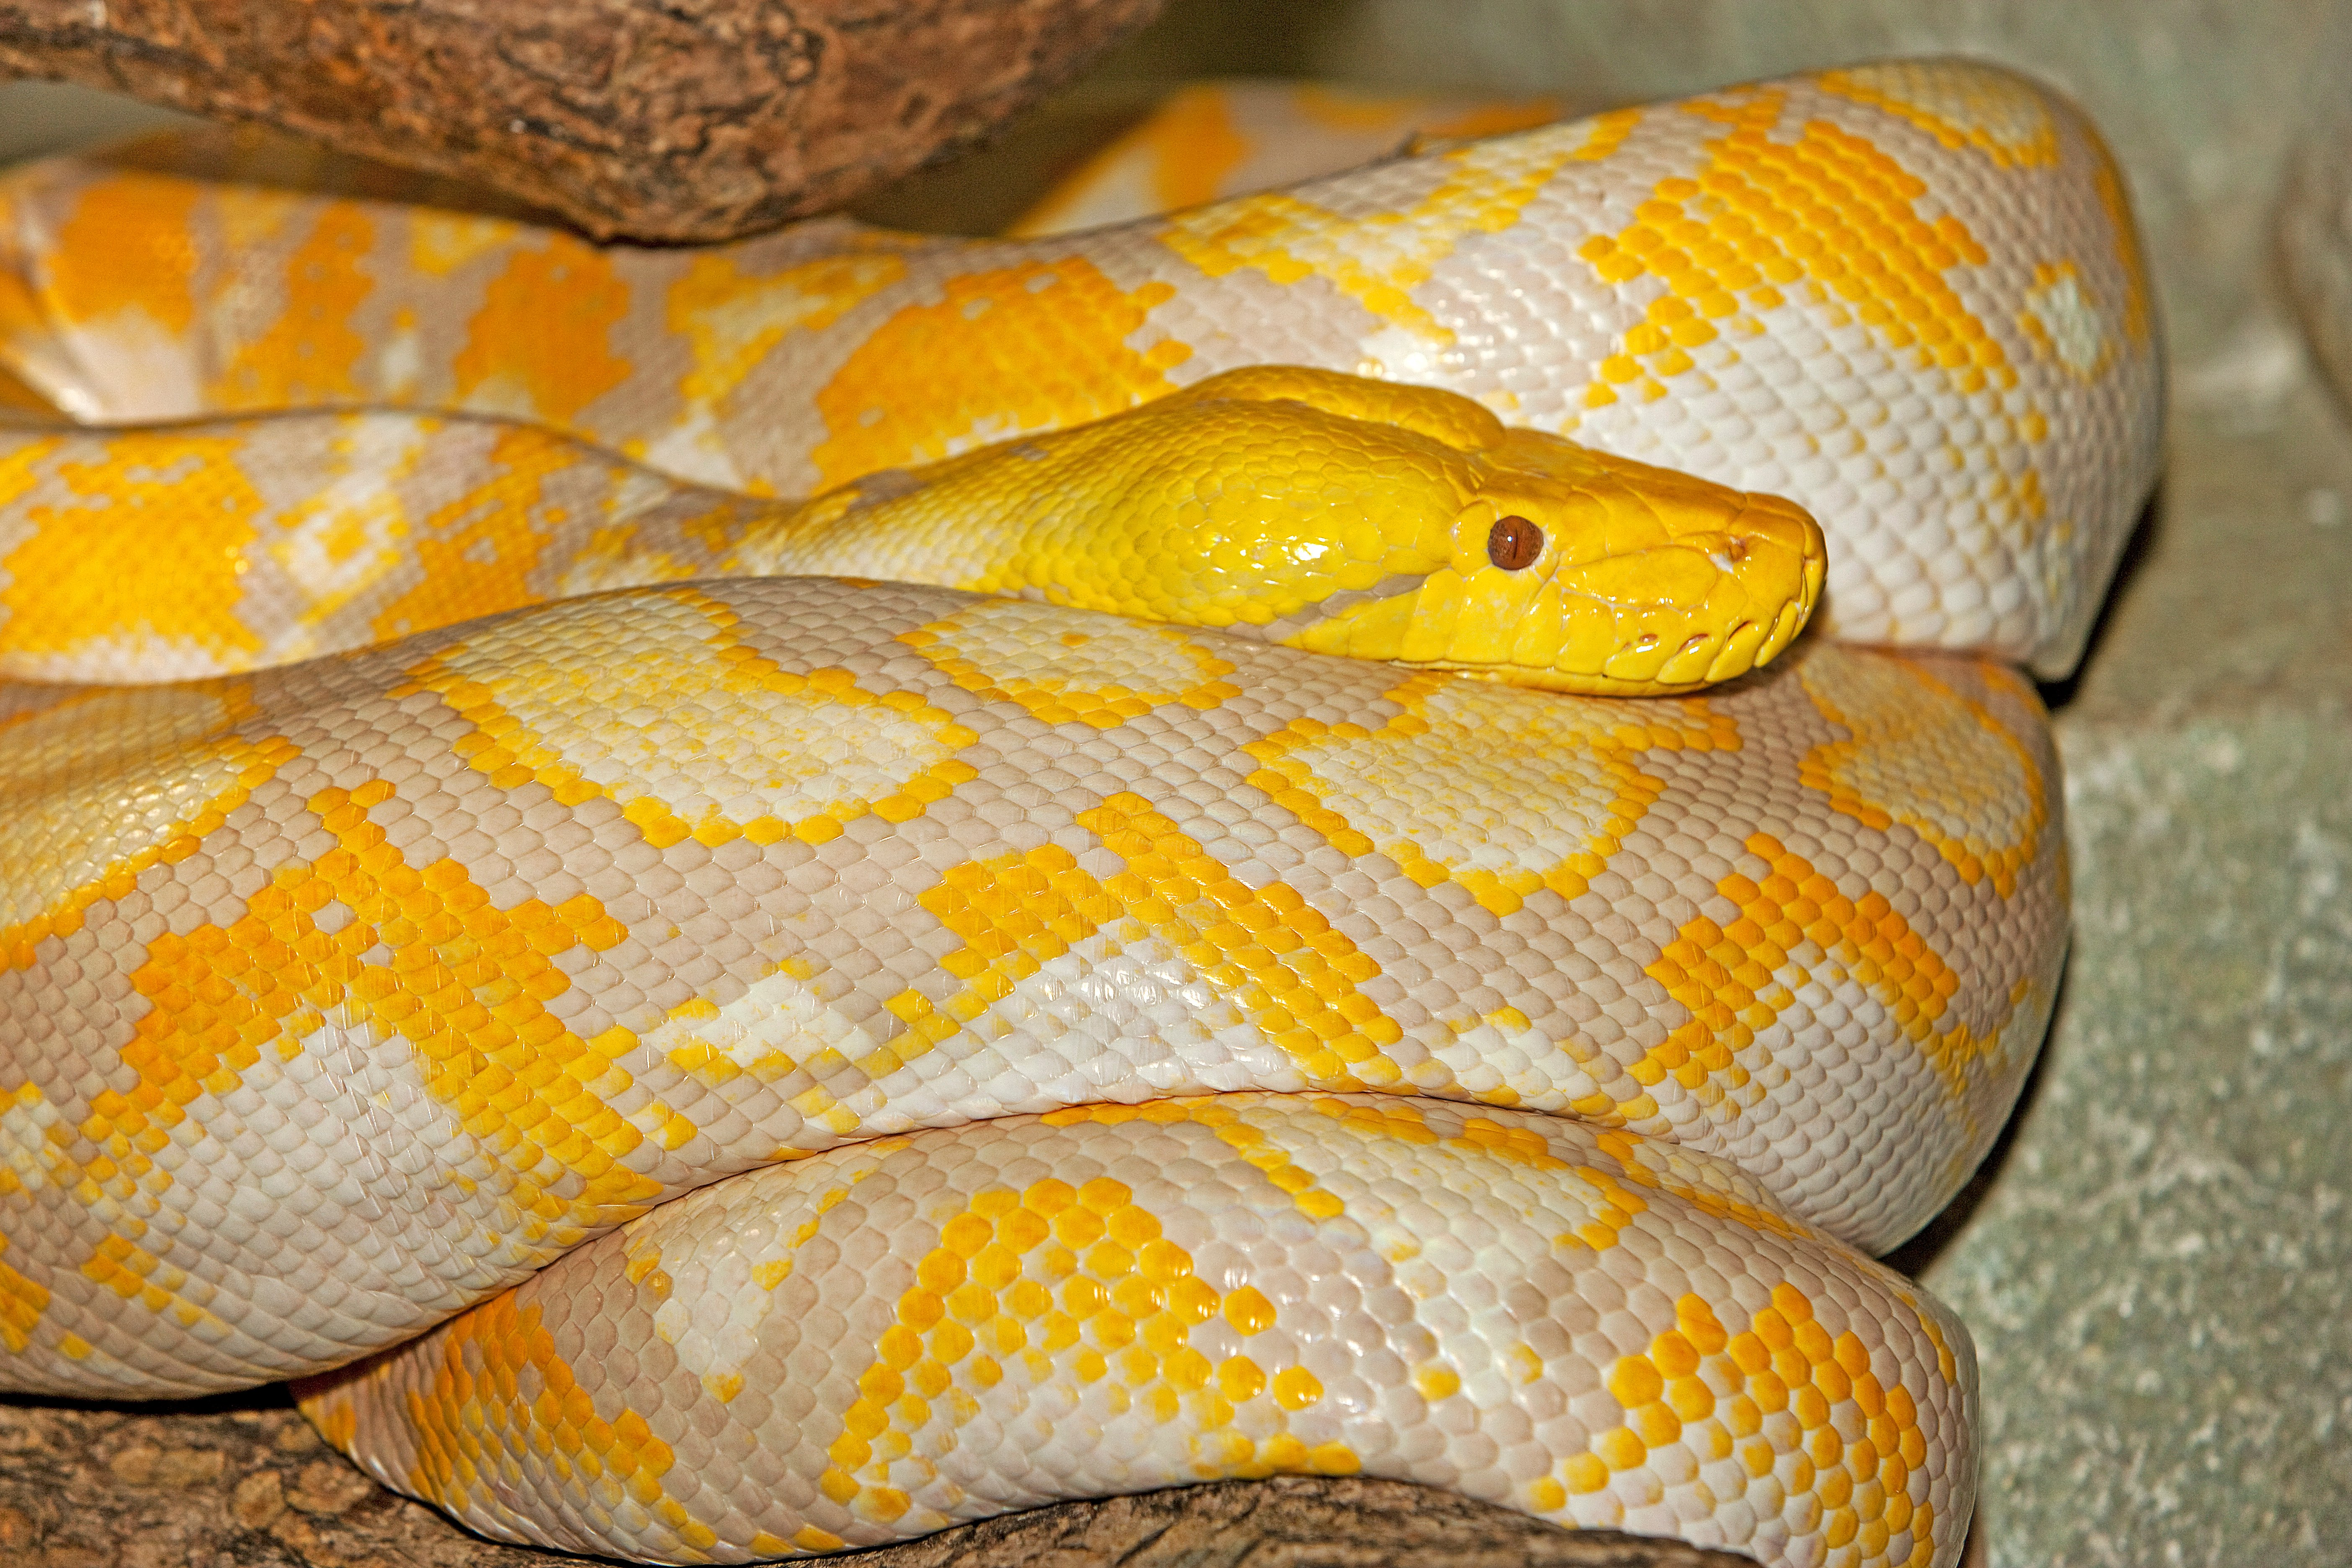 An albino reticulated python similar to the one who bit Walter Erhard   Photo: Shutterstock